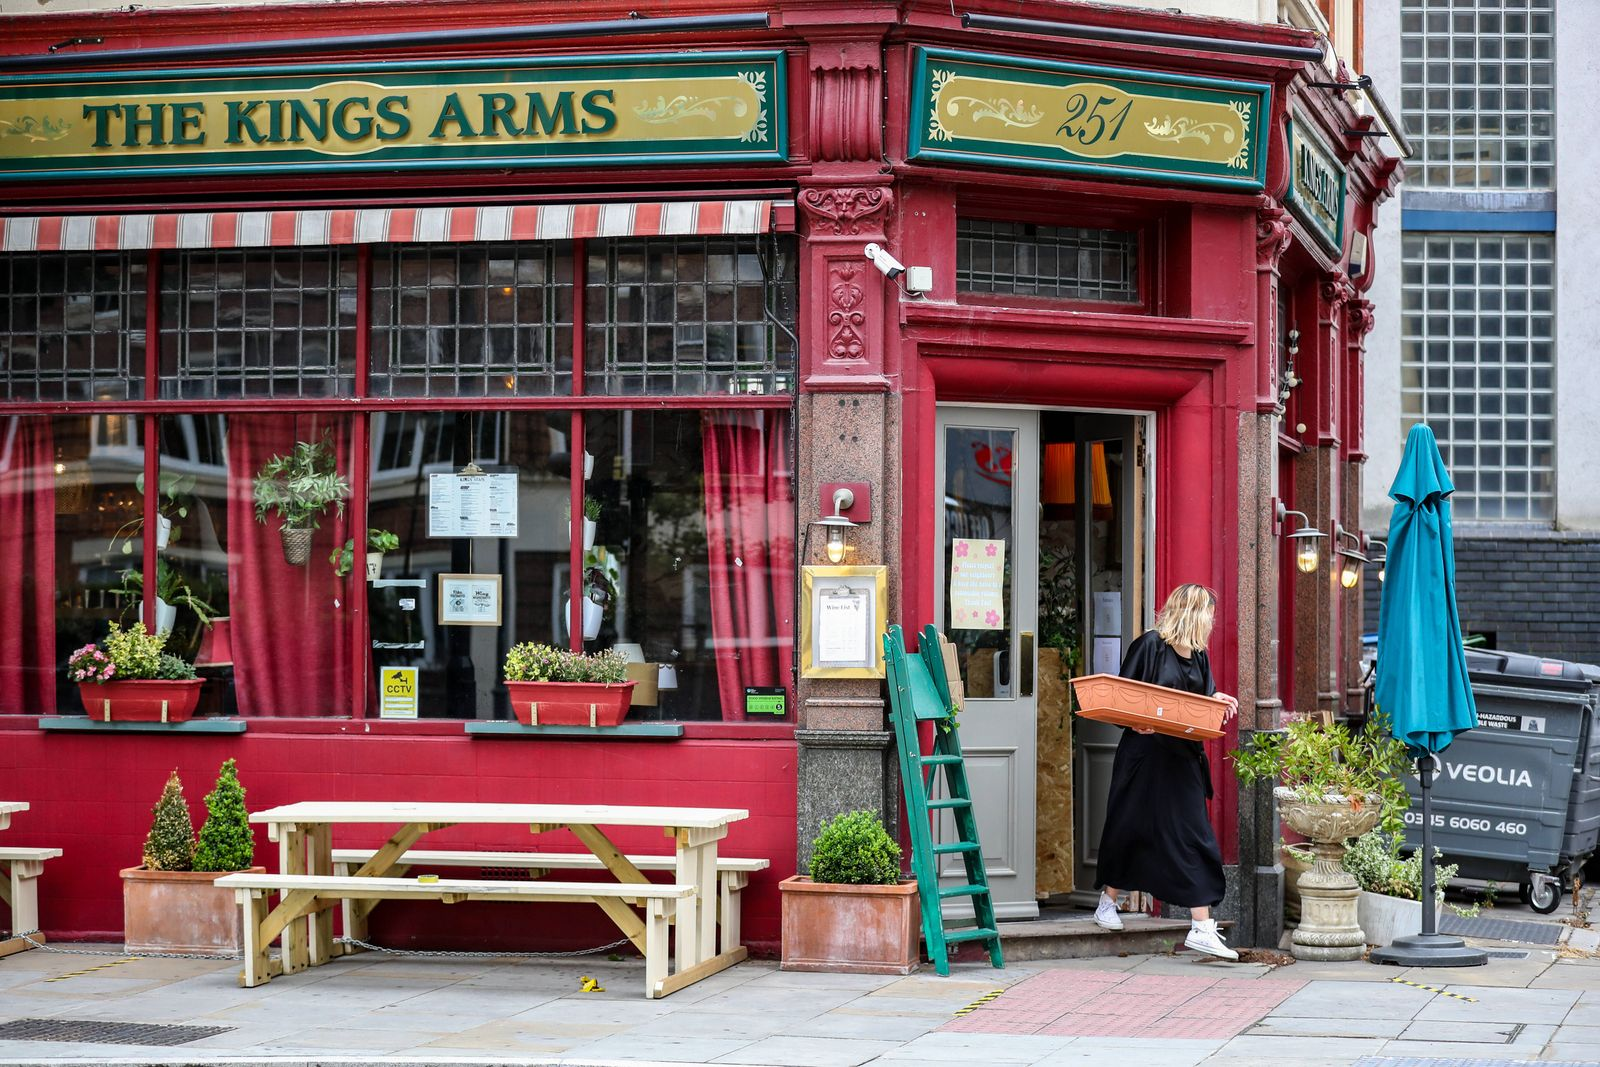 Pubs reopen today welcoming back customers for the first time after the COVID-19 lockdown in London, Saturday, July 4,